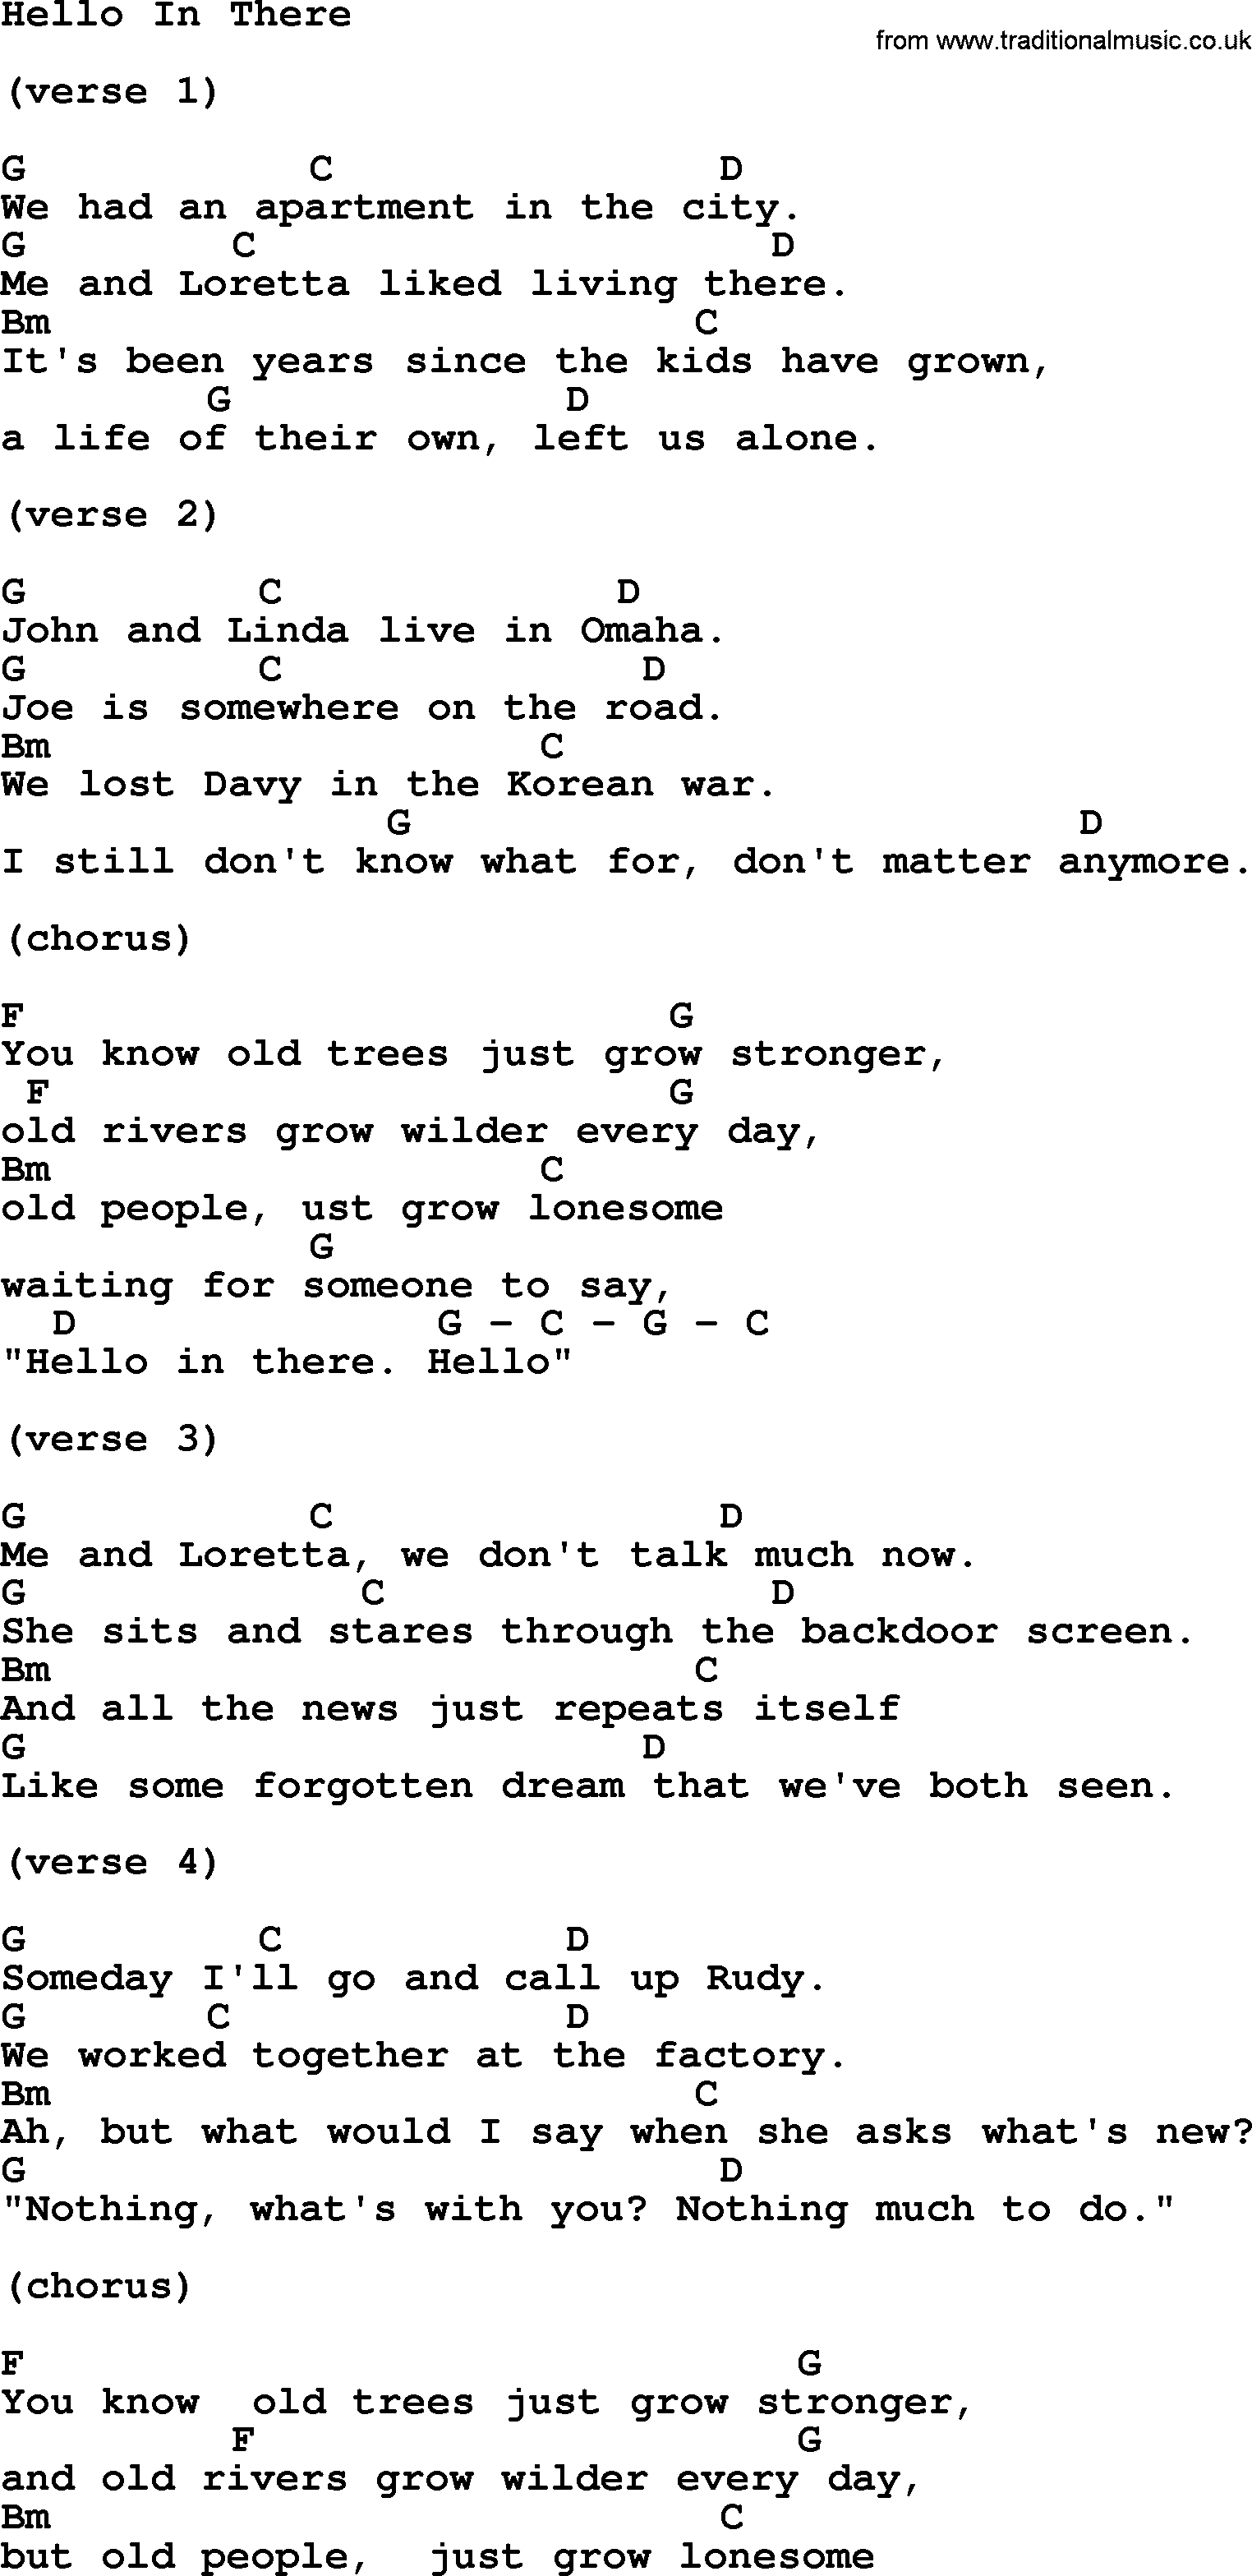 Kris Kristofferson Song Hello In There Lyrics And Chords